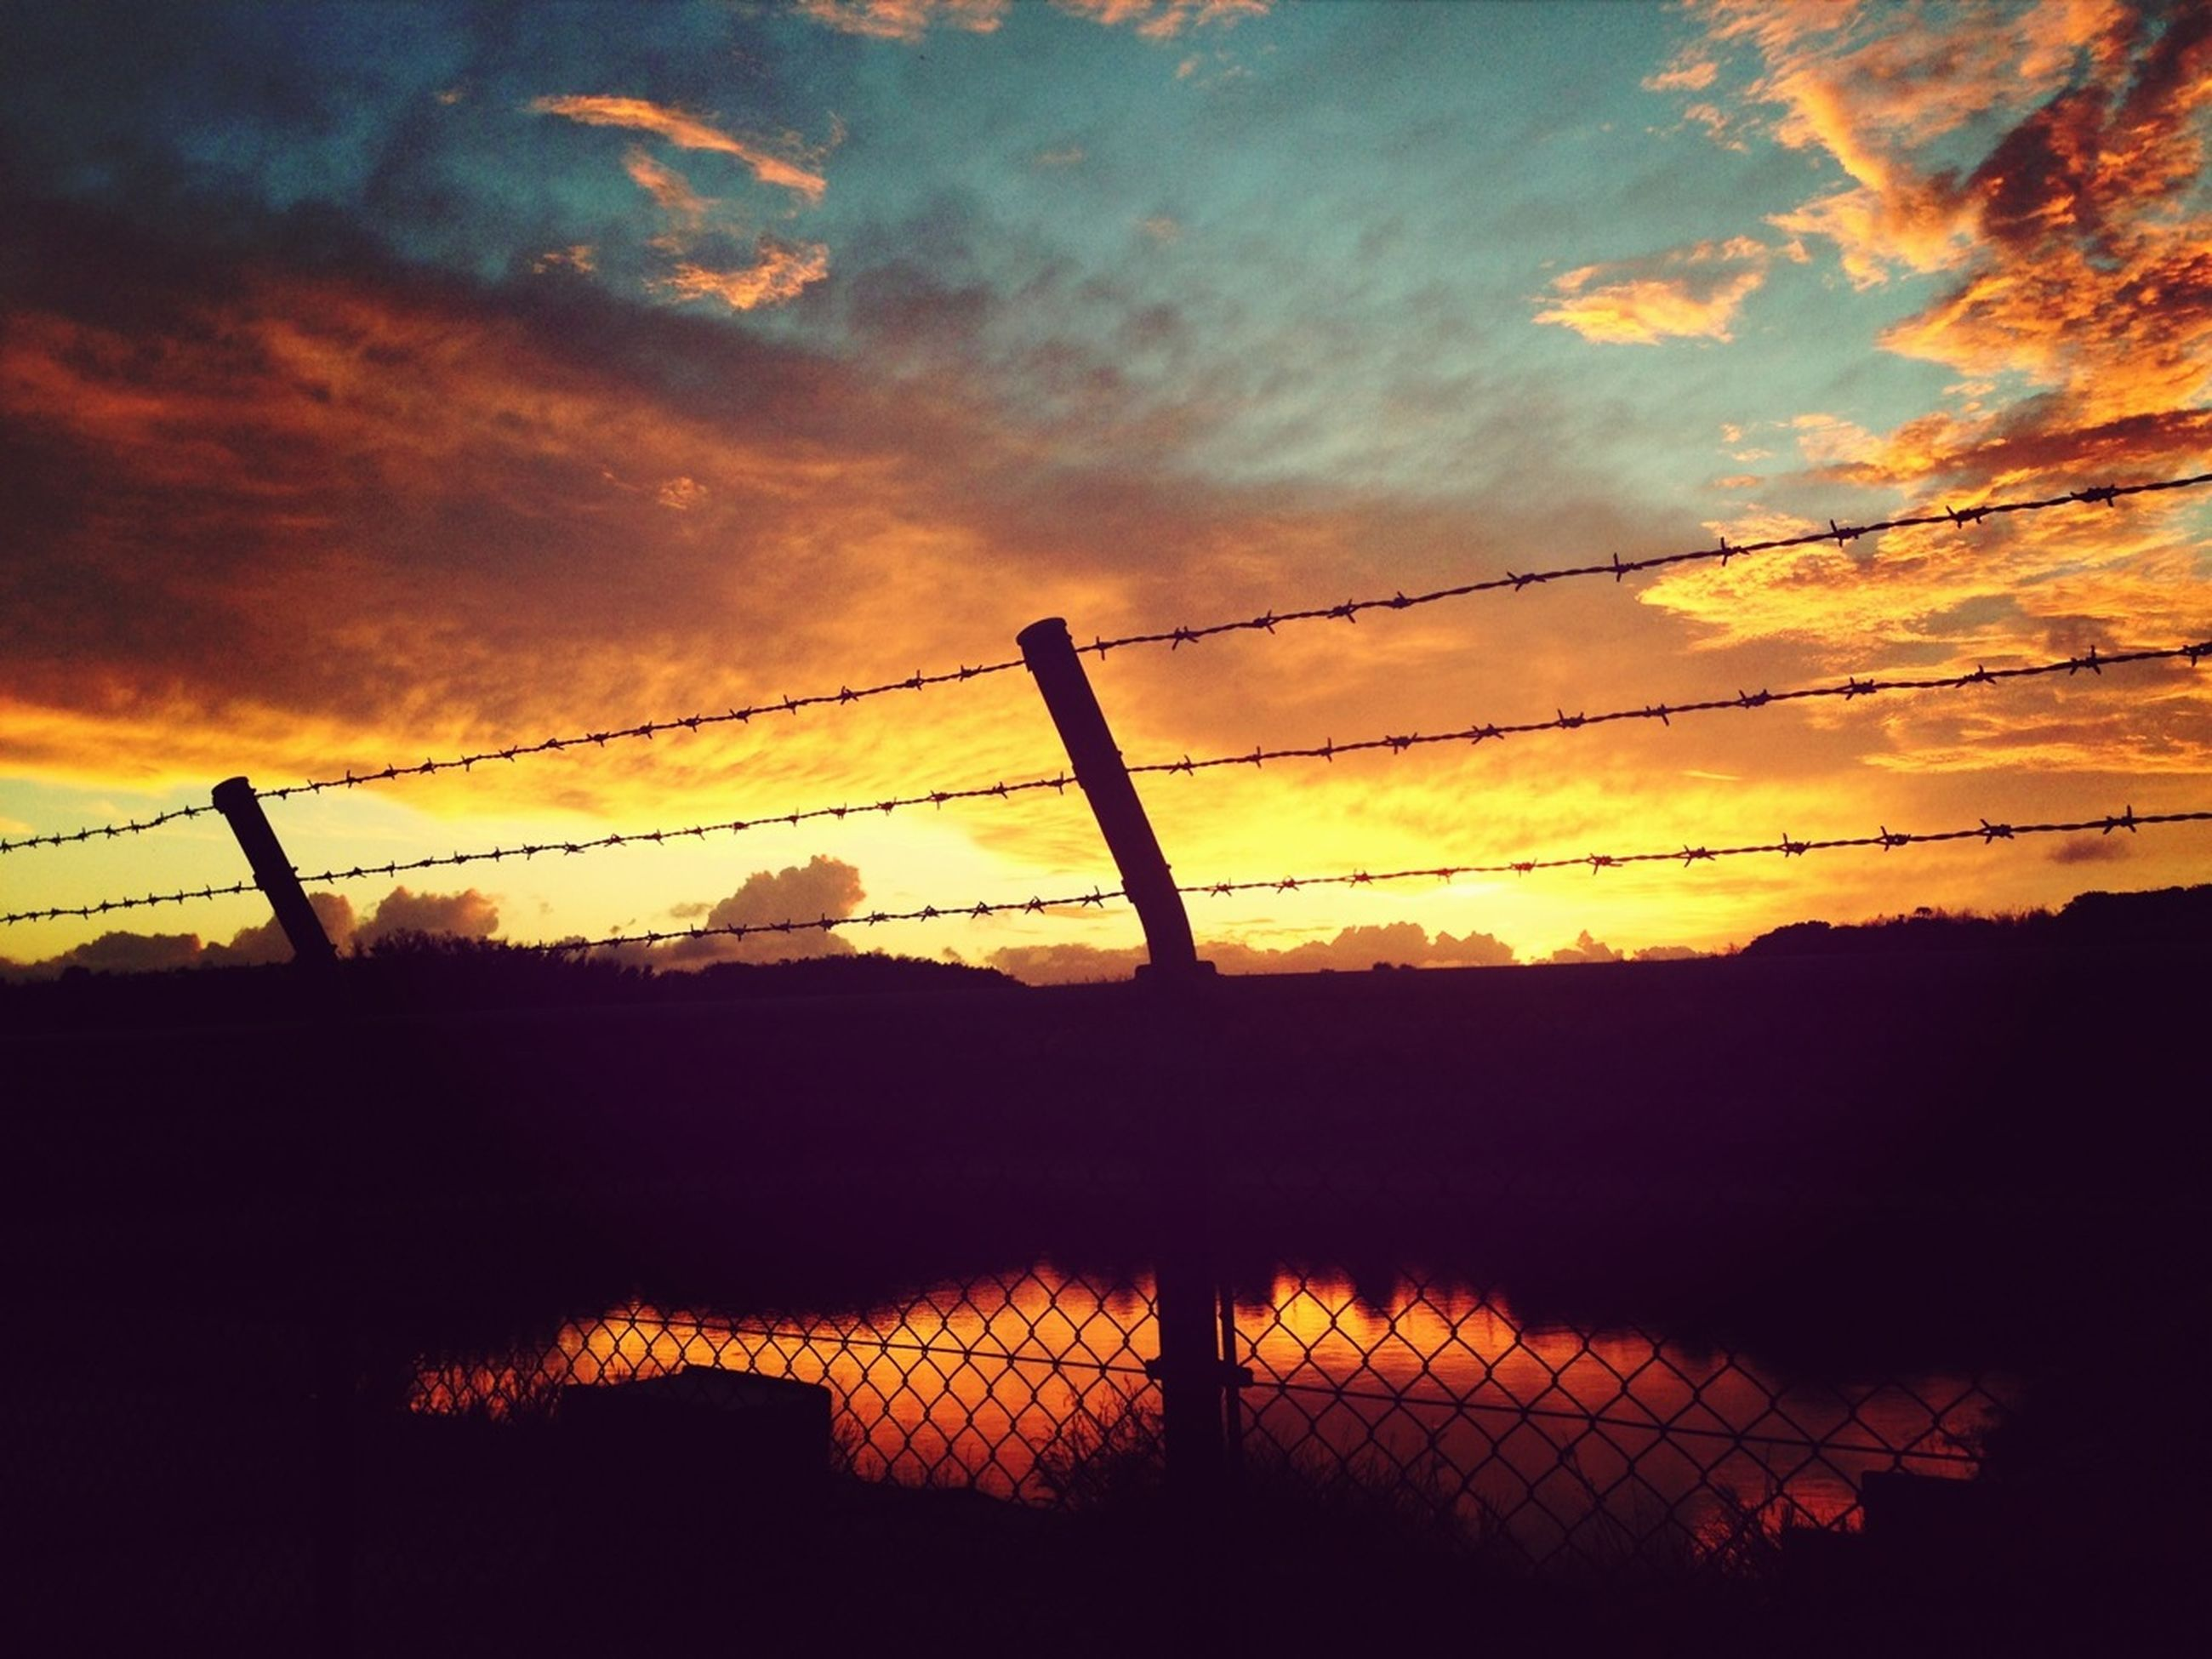 sunset, silhouette, sky, cloud - sky, fence, orange color, safety, protection, connection, security, low angle view, cloud, cloudy, nature, tranquility, beauty in nature, railing, dramatic sky, metal, scenics